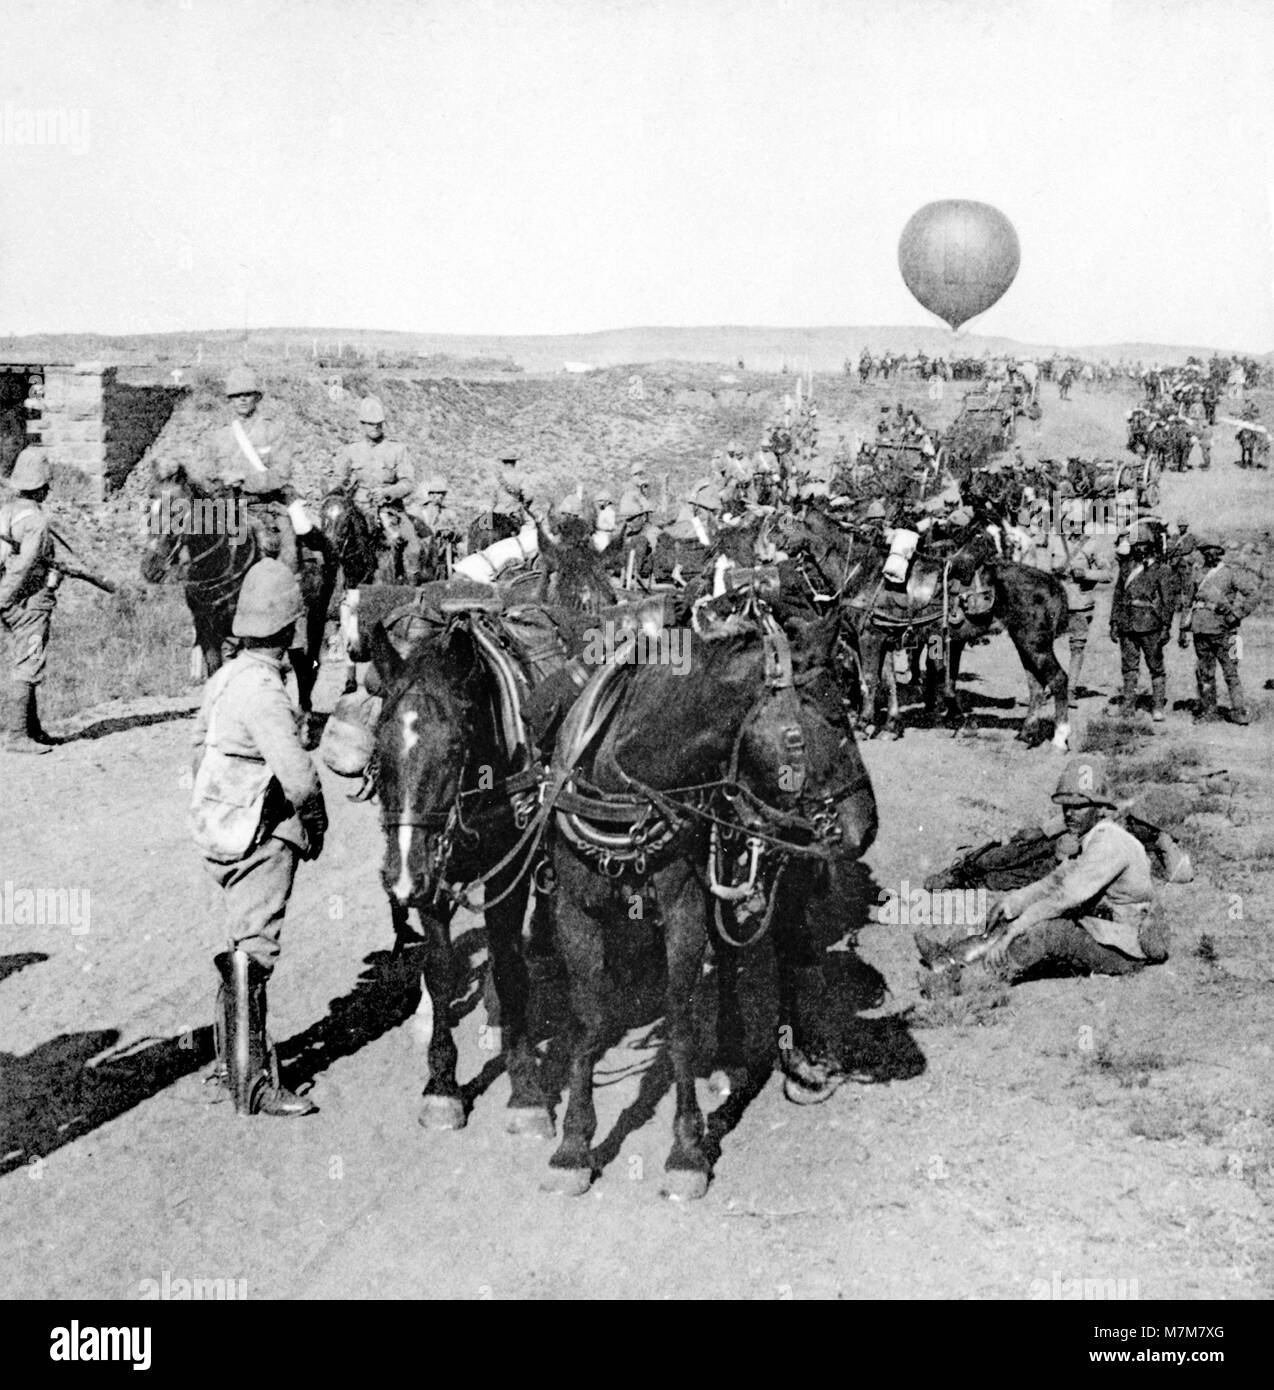 Boer War. The 84th Battery and Balloon Corps of the British Army advancing towards Johannesburg, South Africa, during - Stock Image